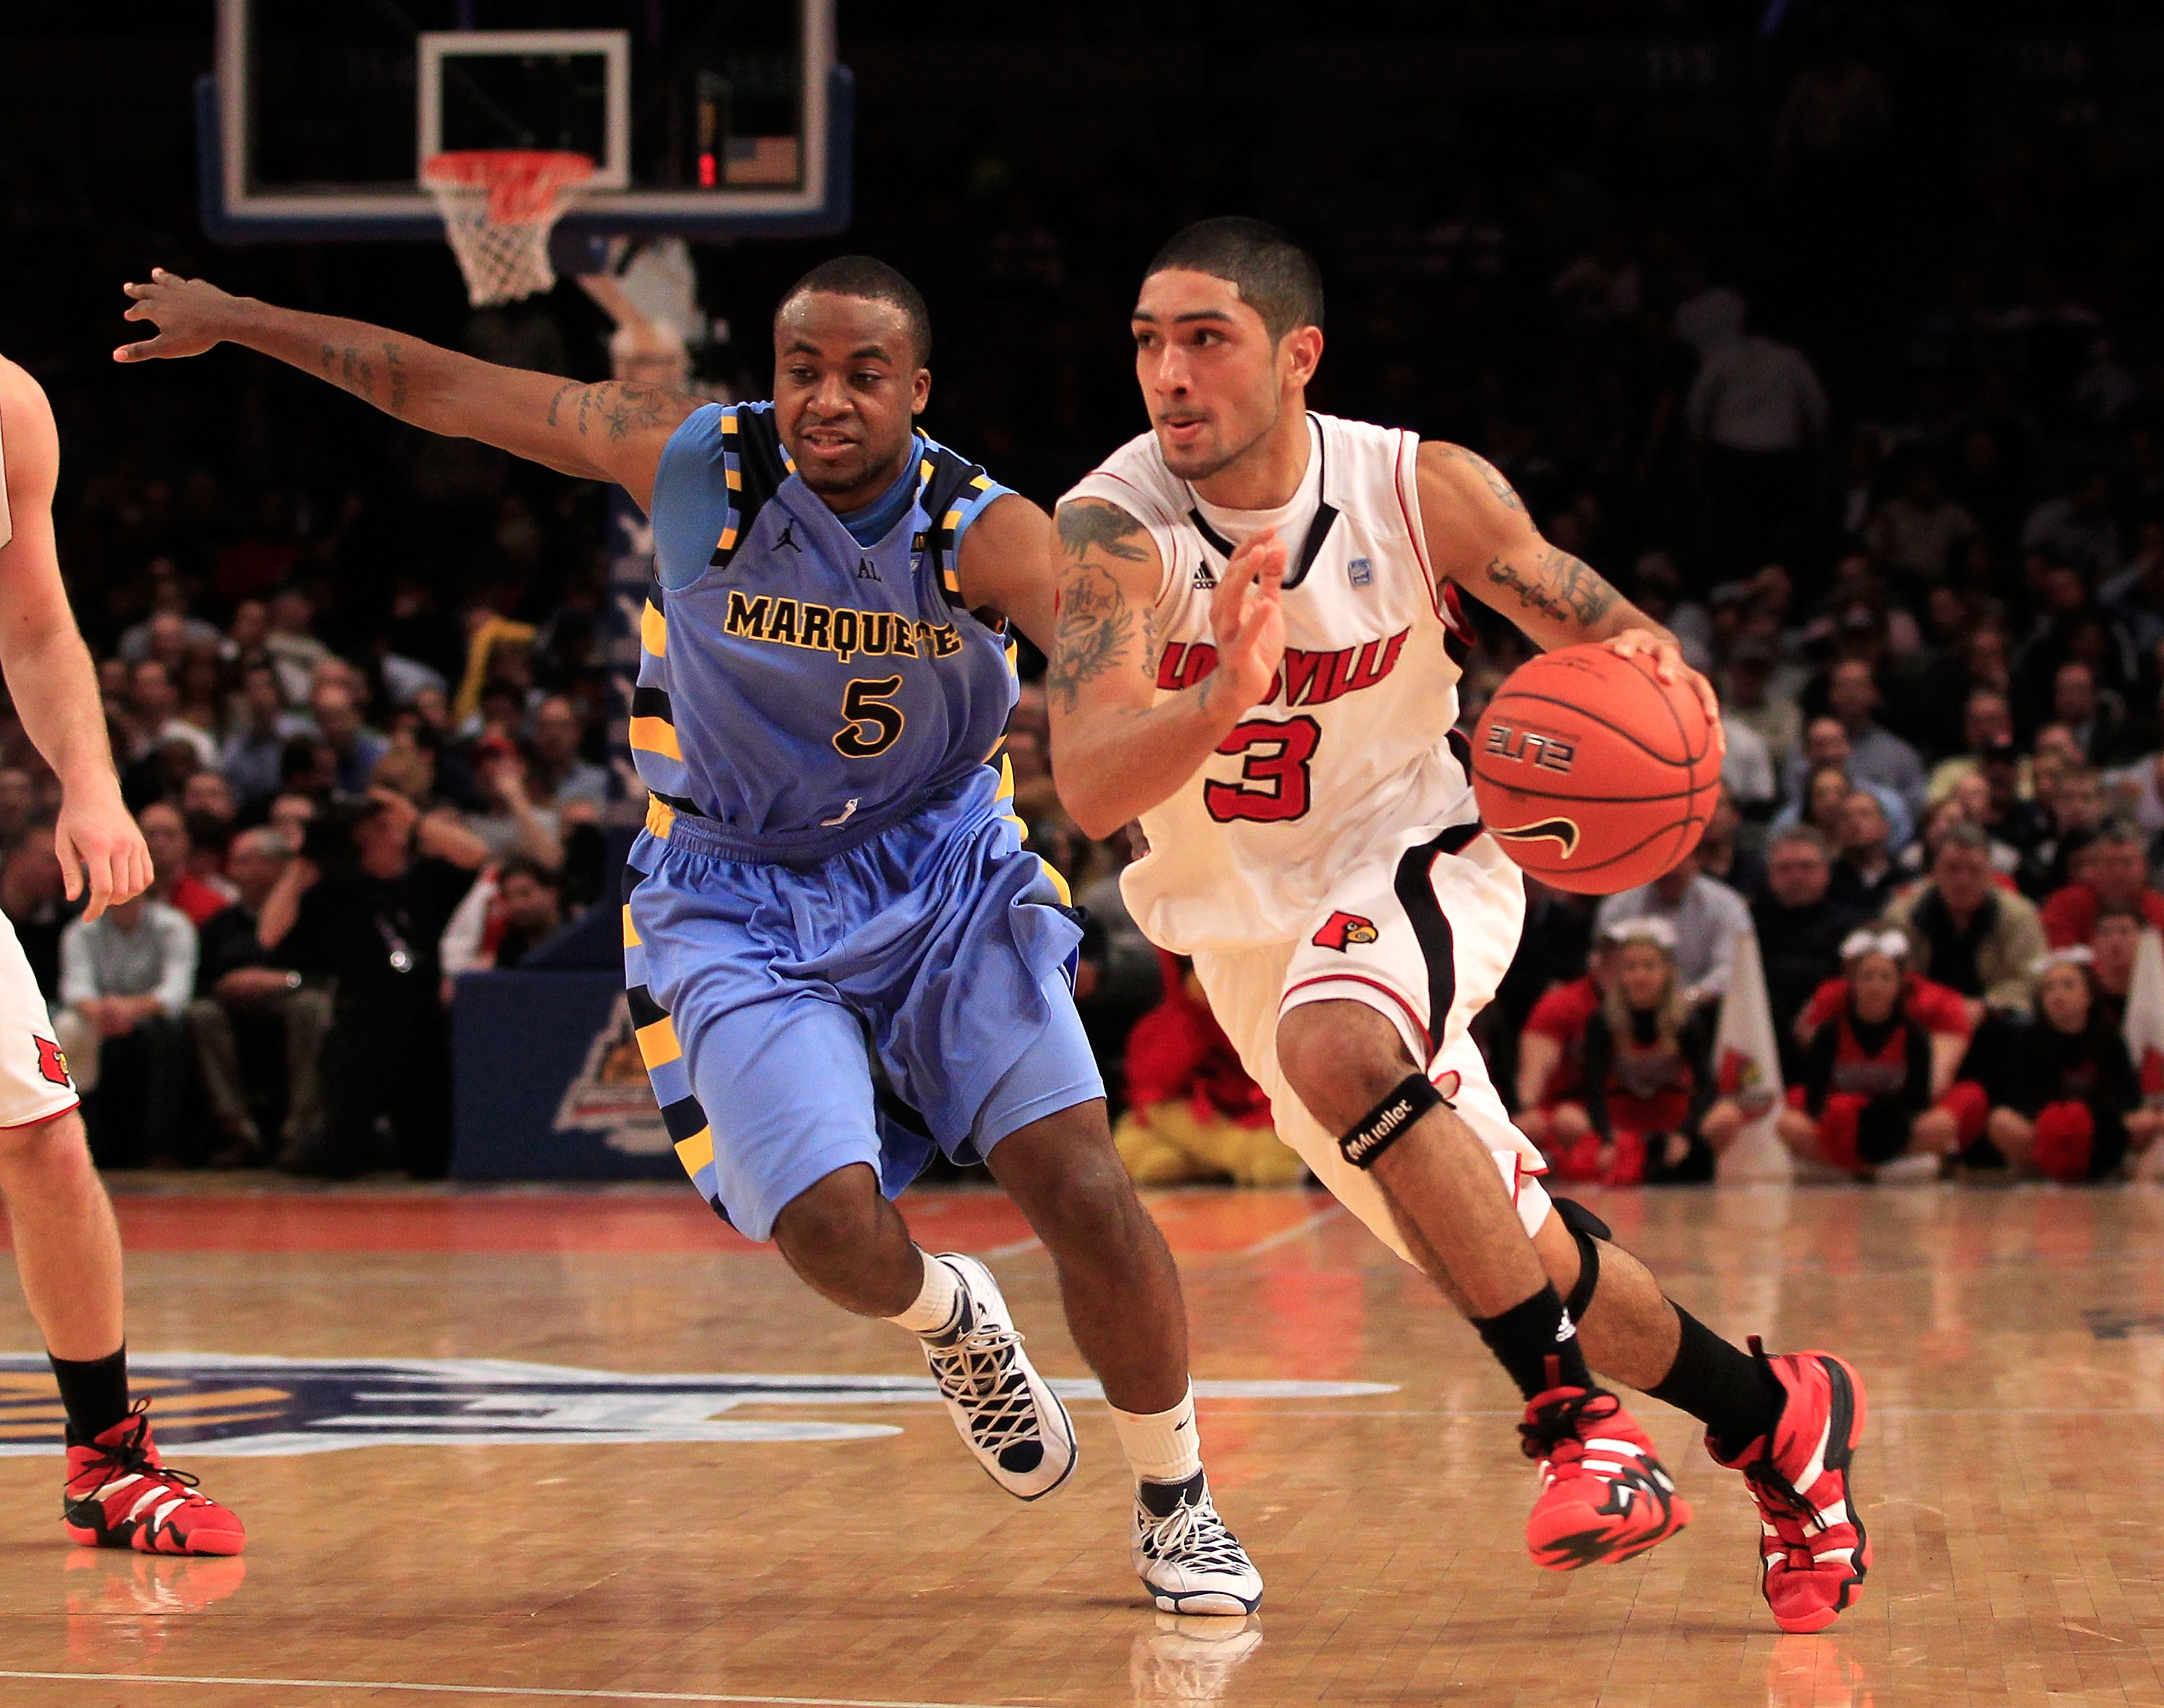 NEW YORK, NY - MARCH 10:  Peyton Siva #3 of the Louisville Cardinals brings the ball up court against Junior Cadougan #5 of the Marquette Golden Eagles during the quarterfinals of the 2011 Big East Men's Basketball Tournament presented by American Eagle O